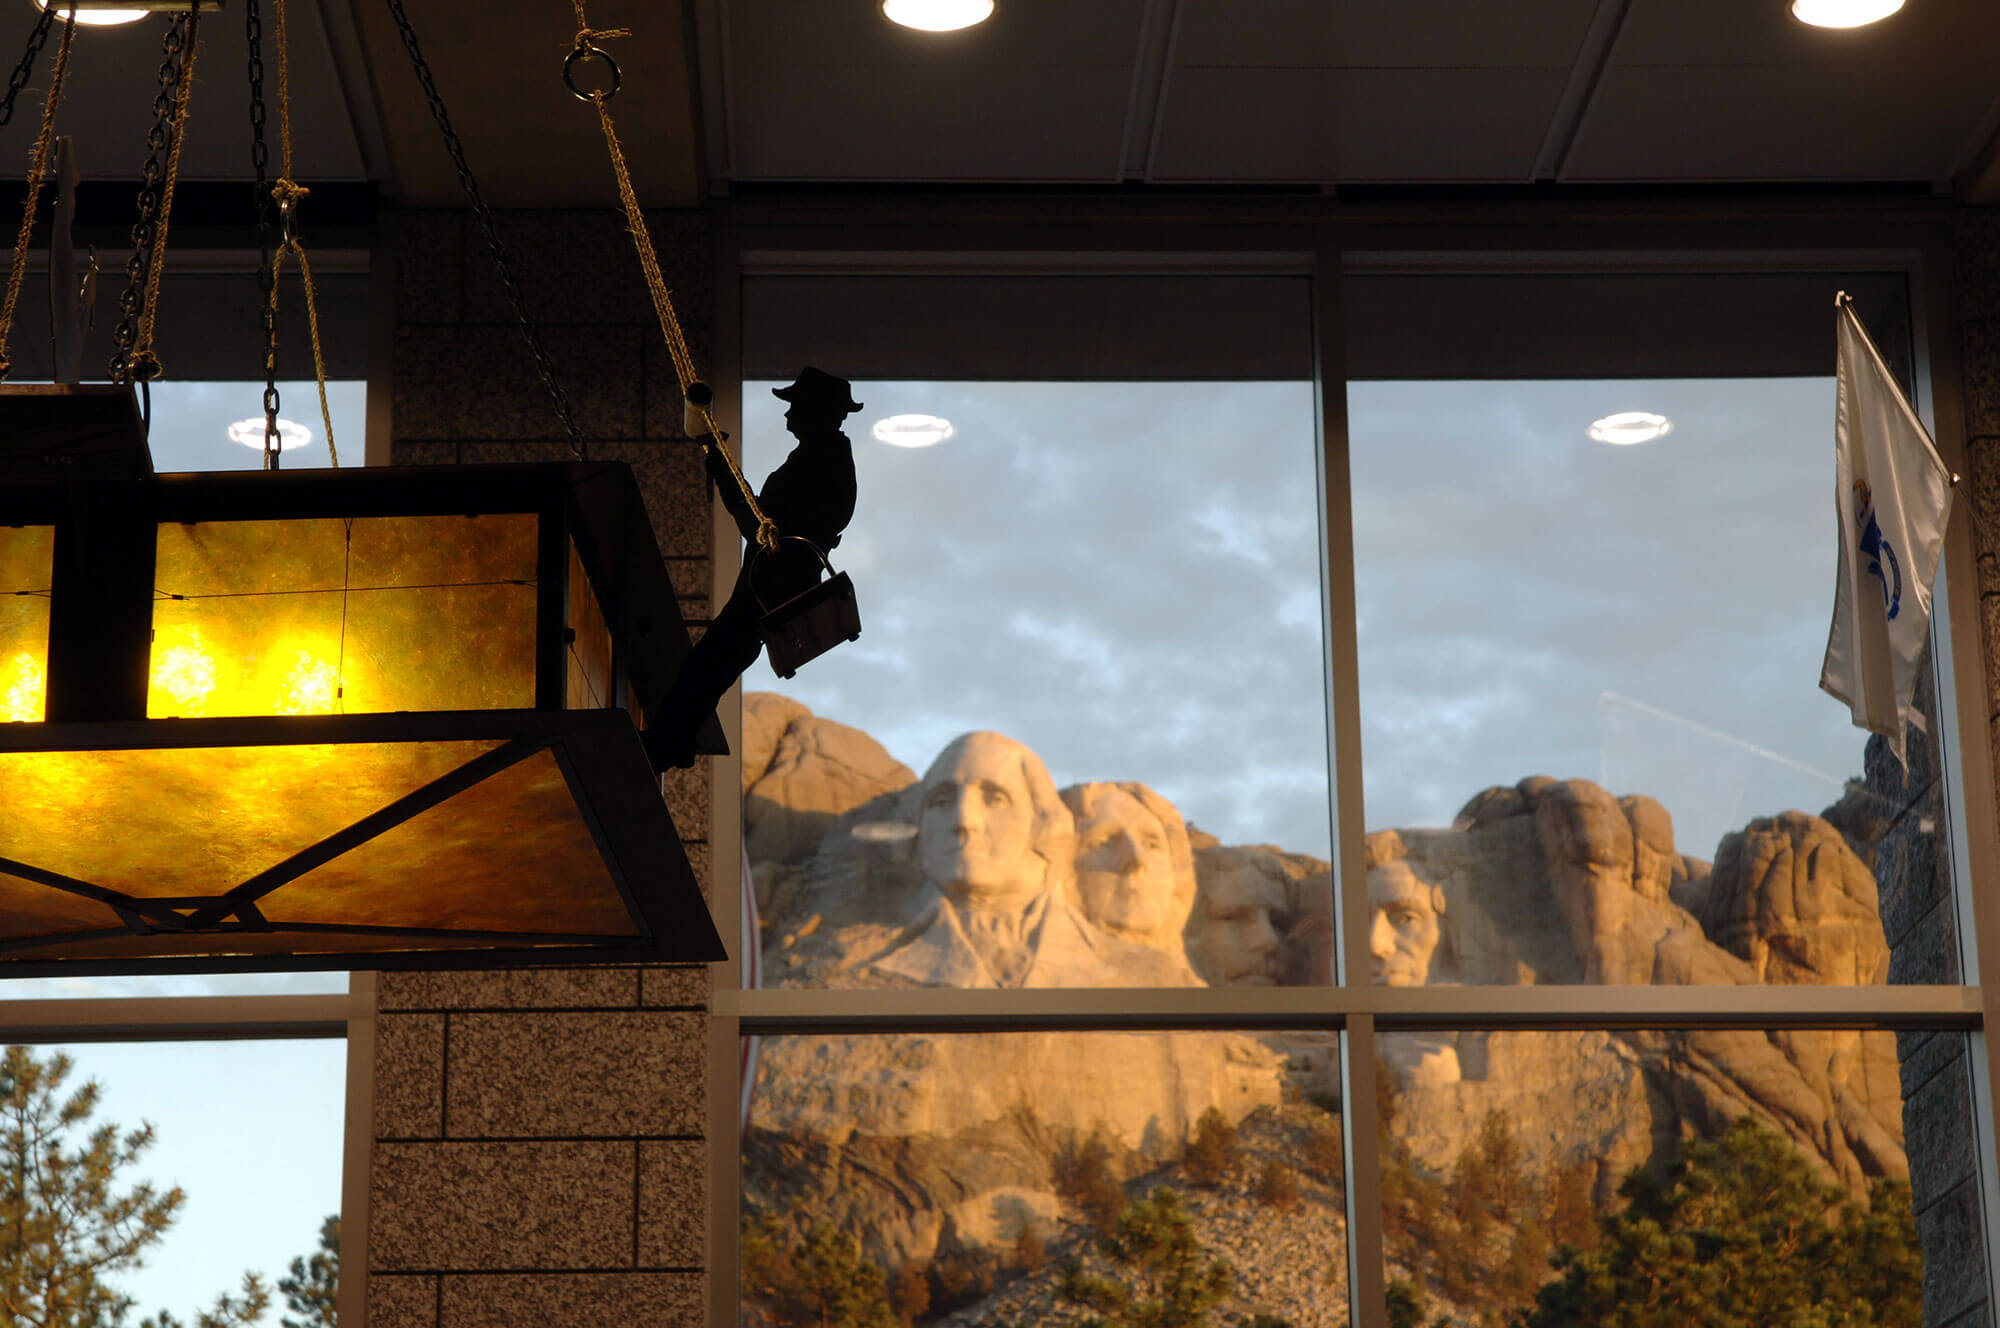 Mt.Rushmore Window View